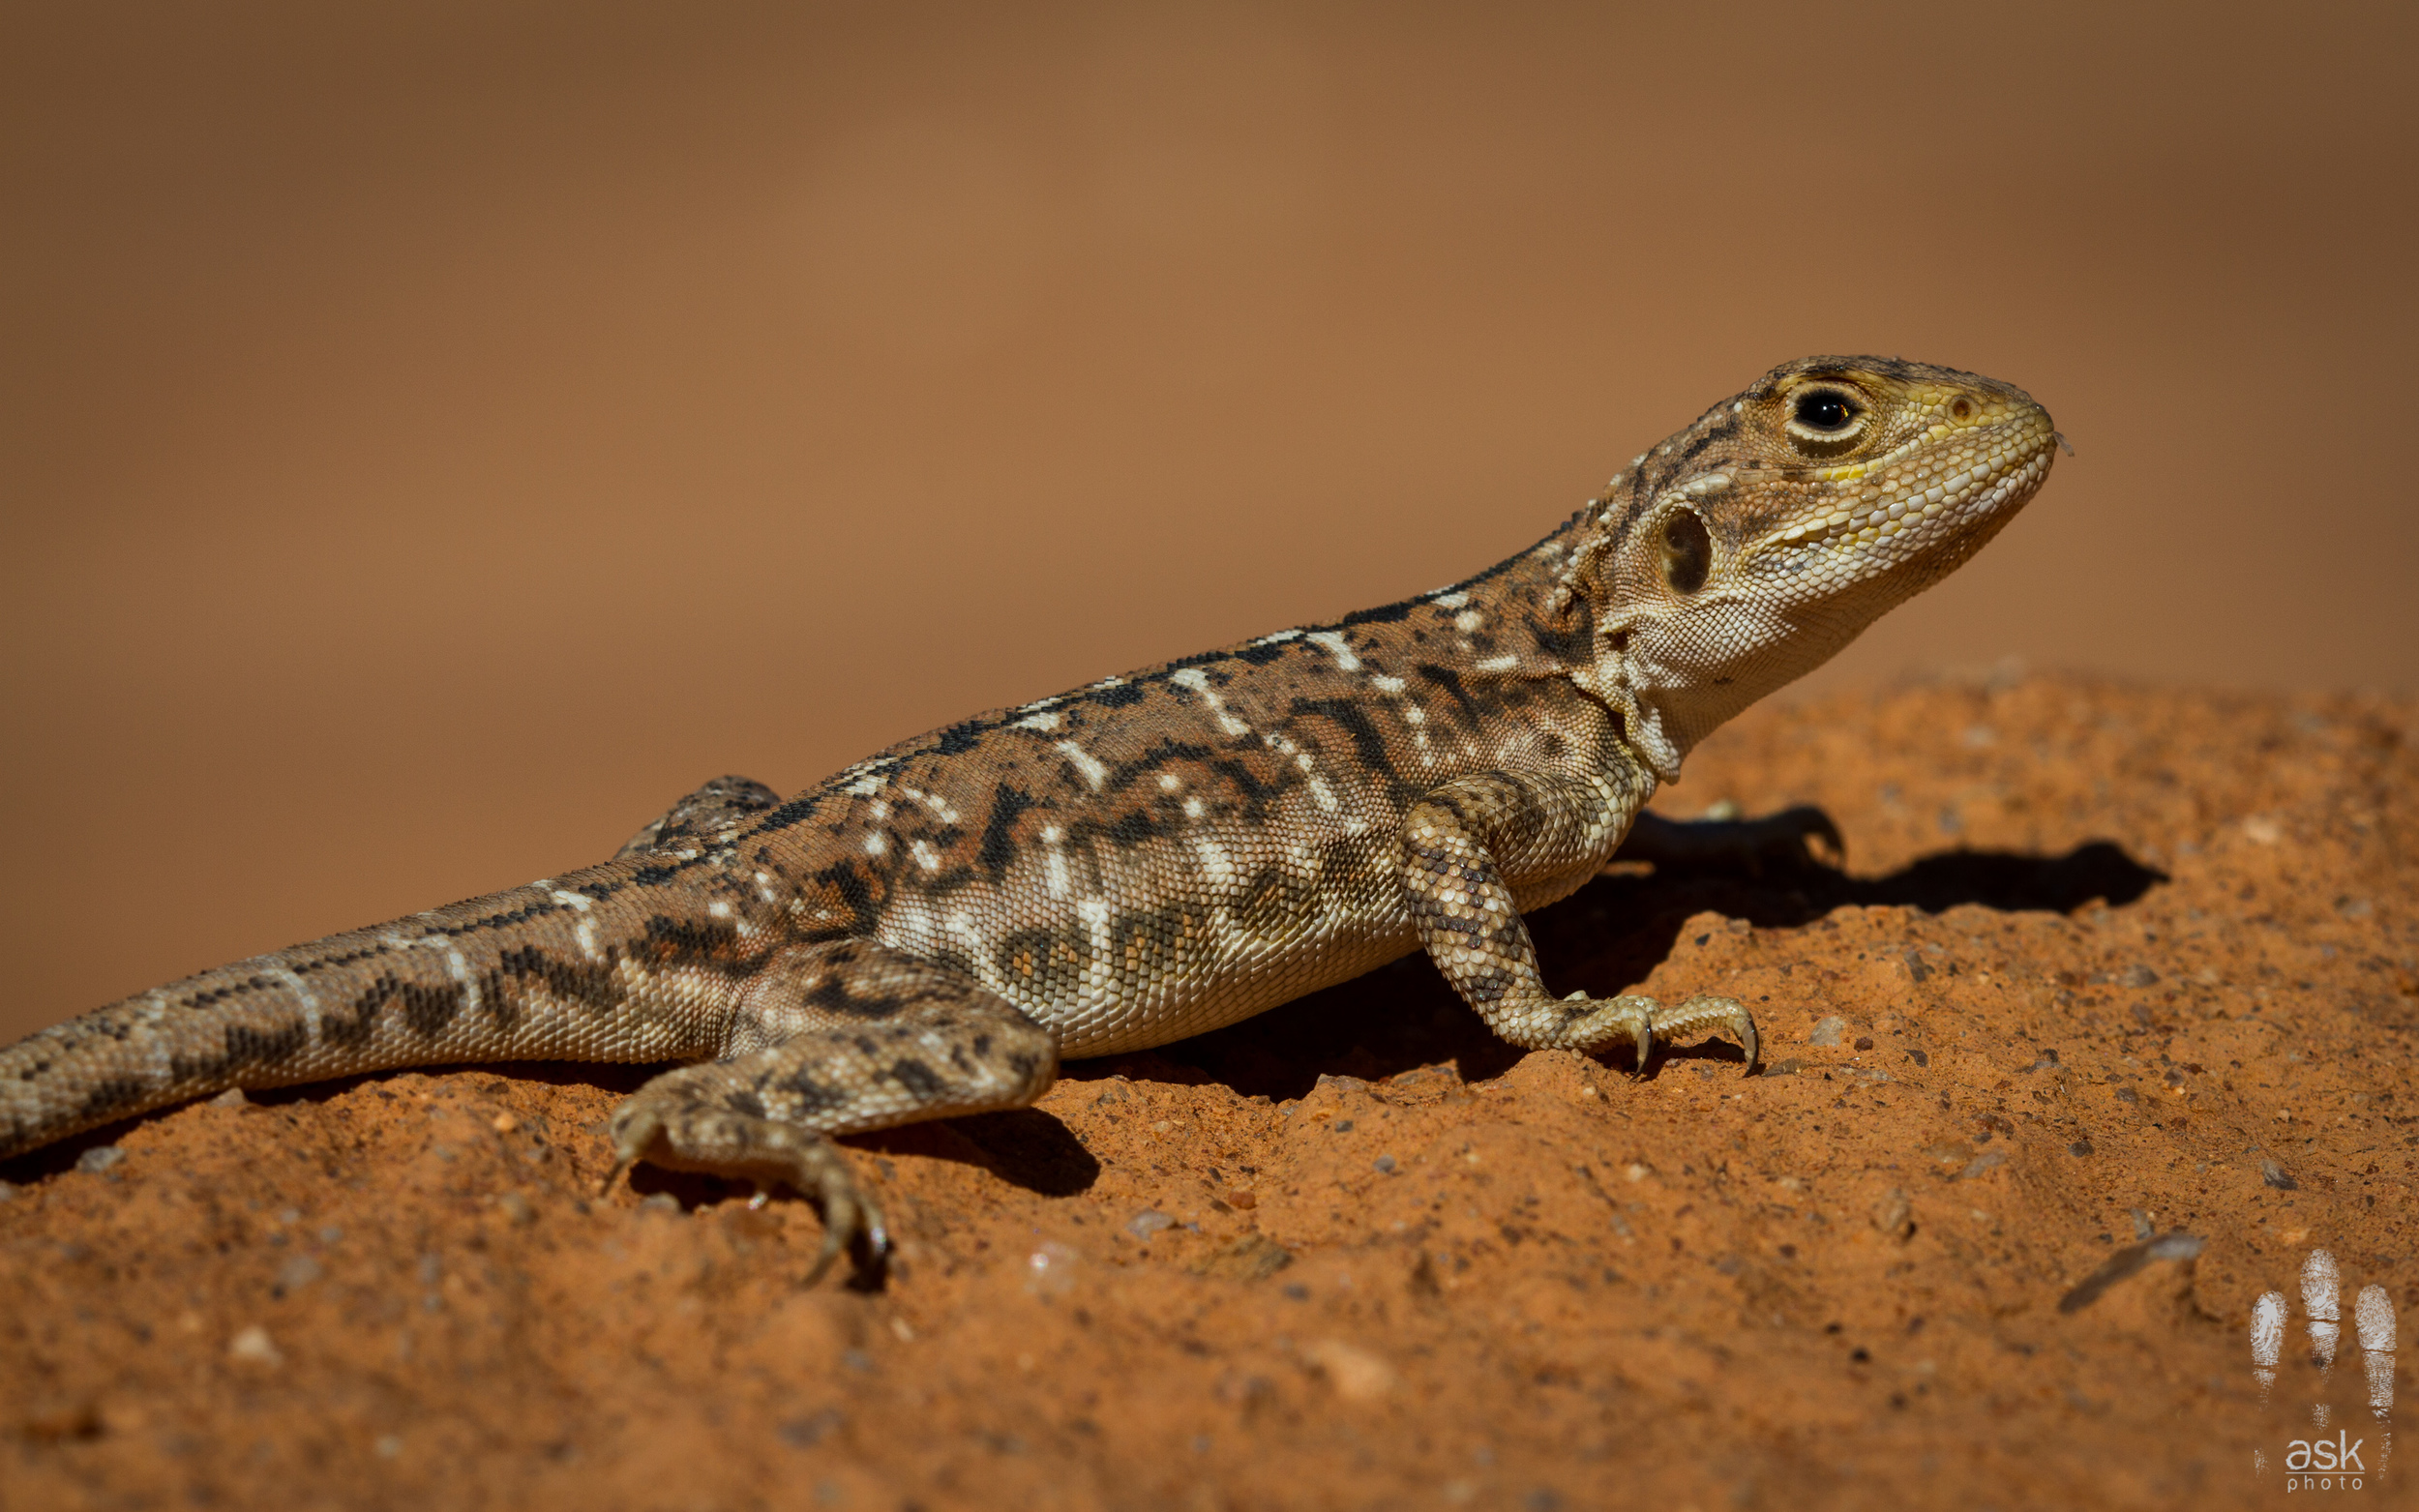 Female painted dragon,  Ctenophorus pictus . Turlga Station, South Australia, 2012. Photo by Angus Kennedy.